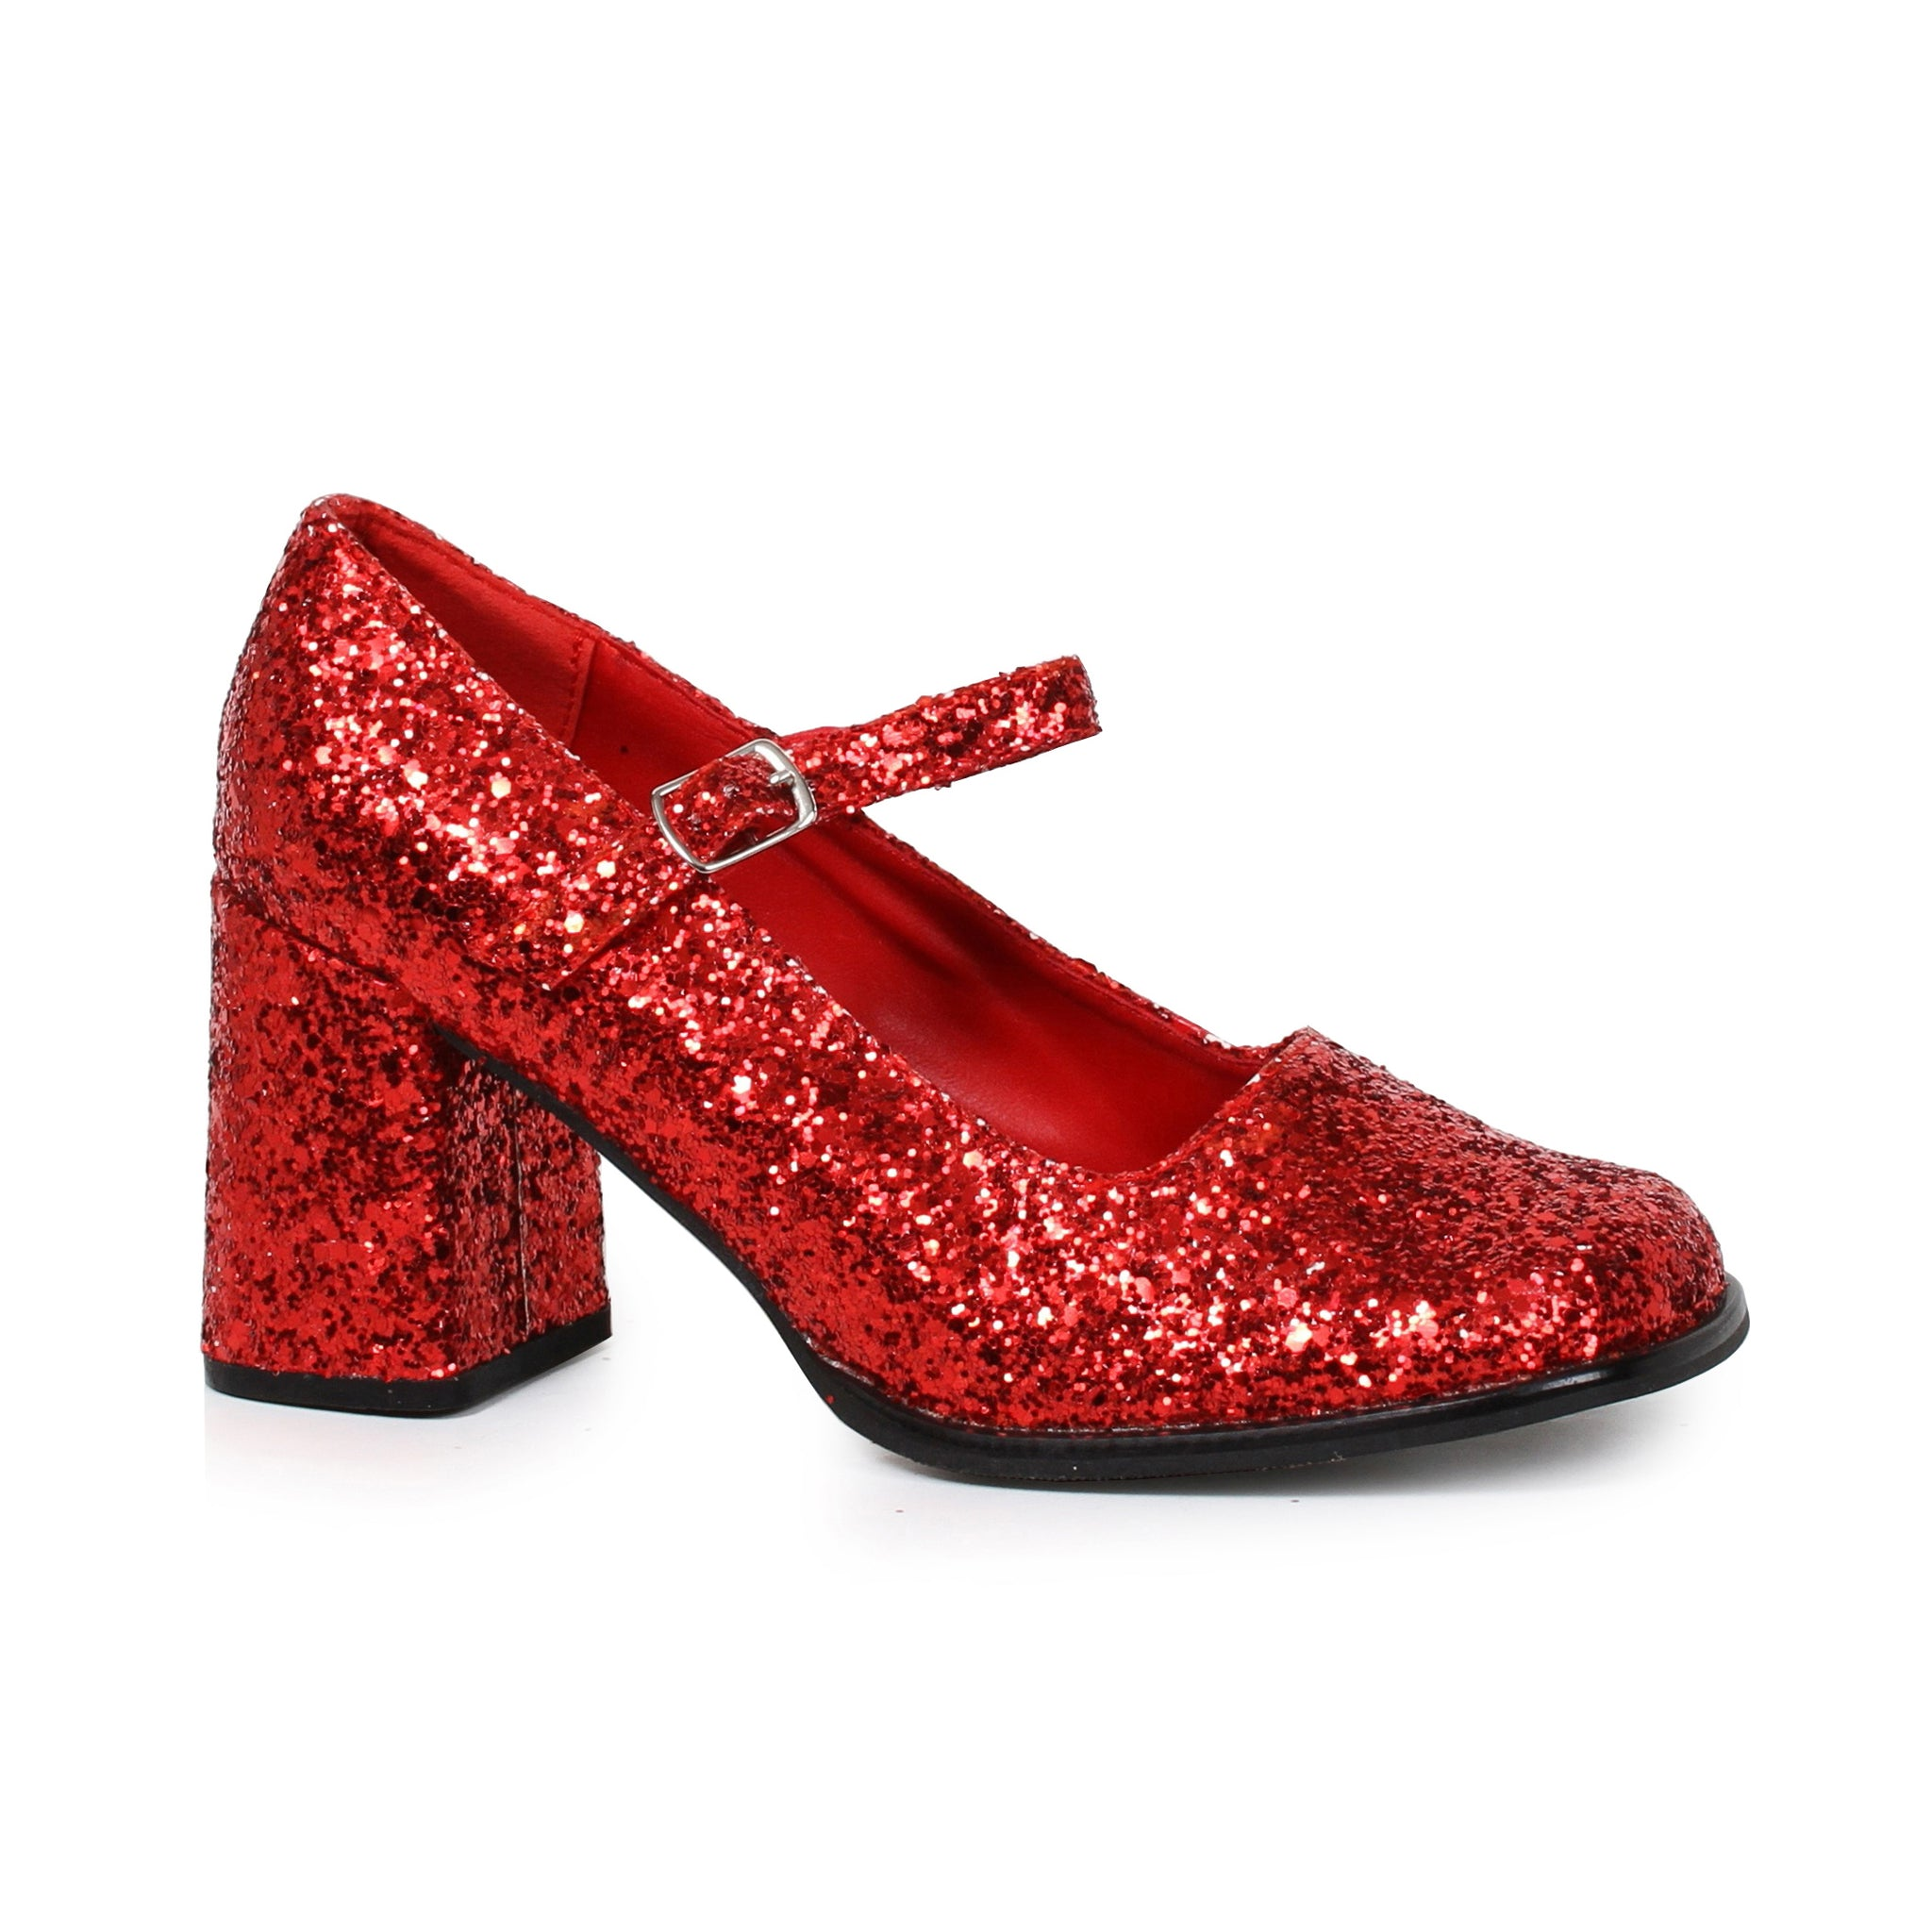 3 Heel Mary Jane Glitter Shoes